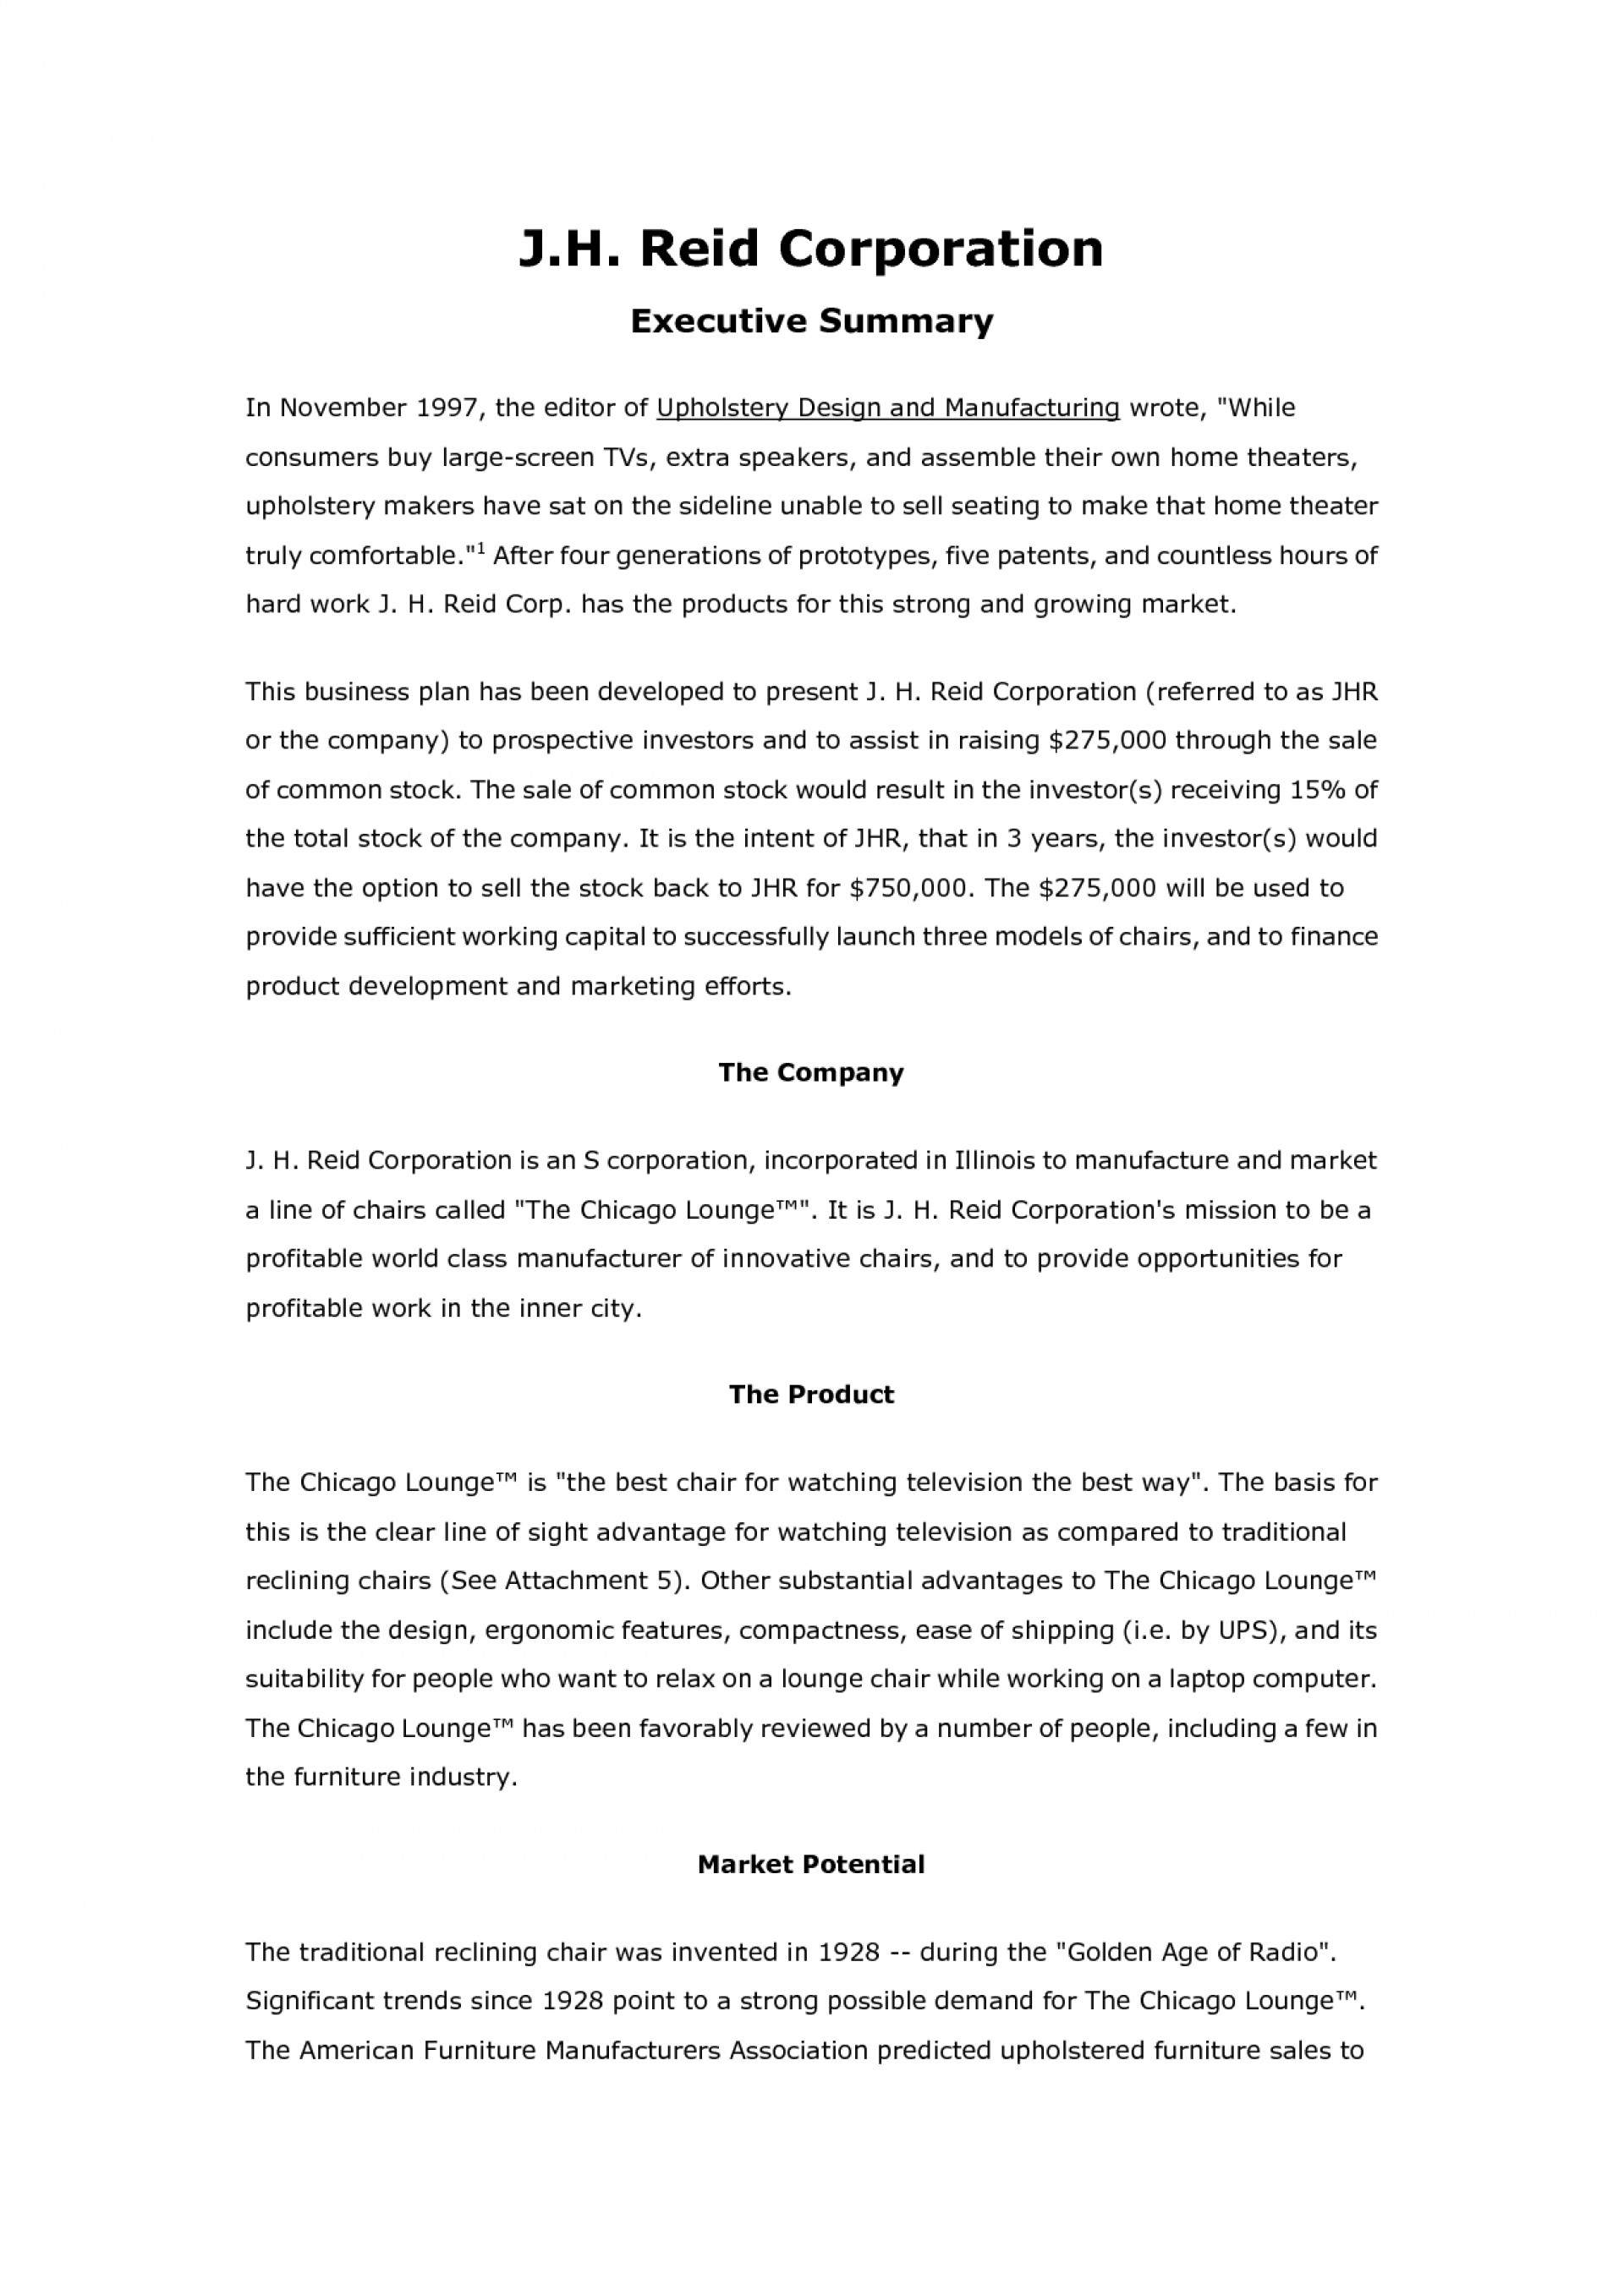 016 Hard Work Essay Example Business Plan Outstanding 1920